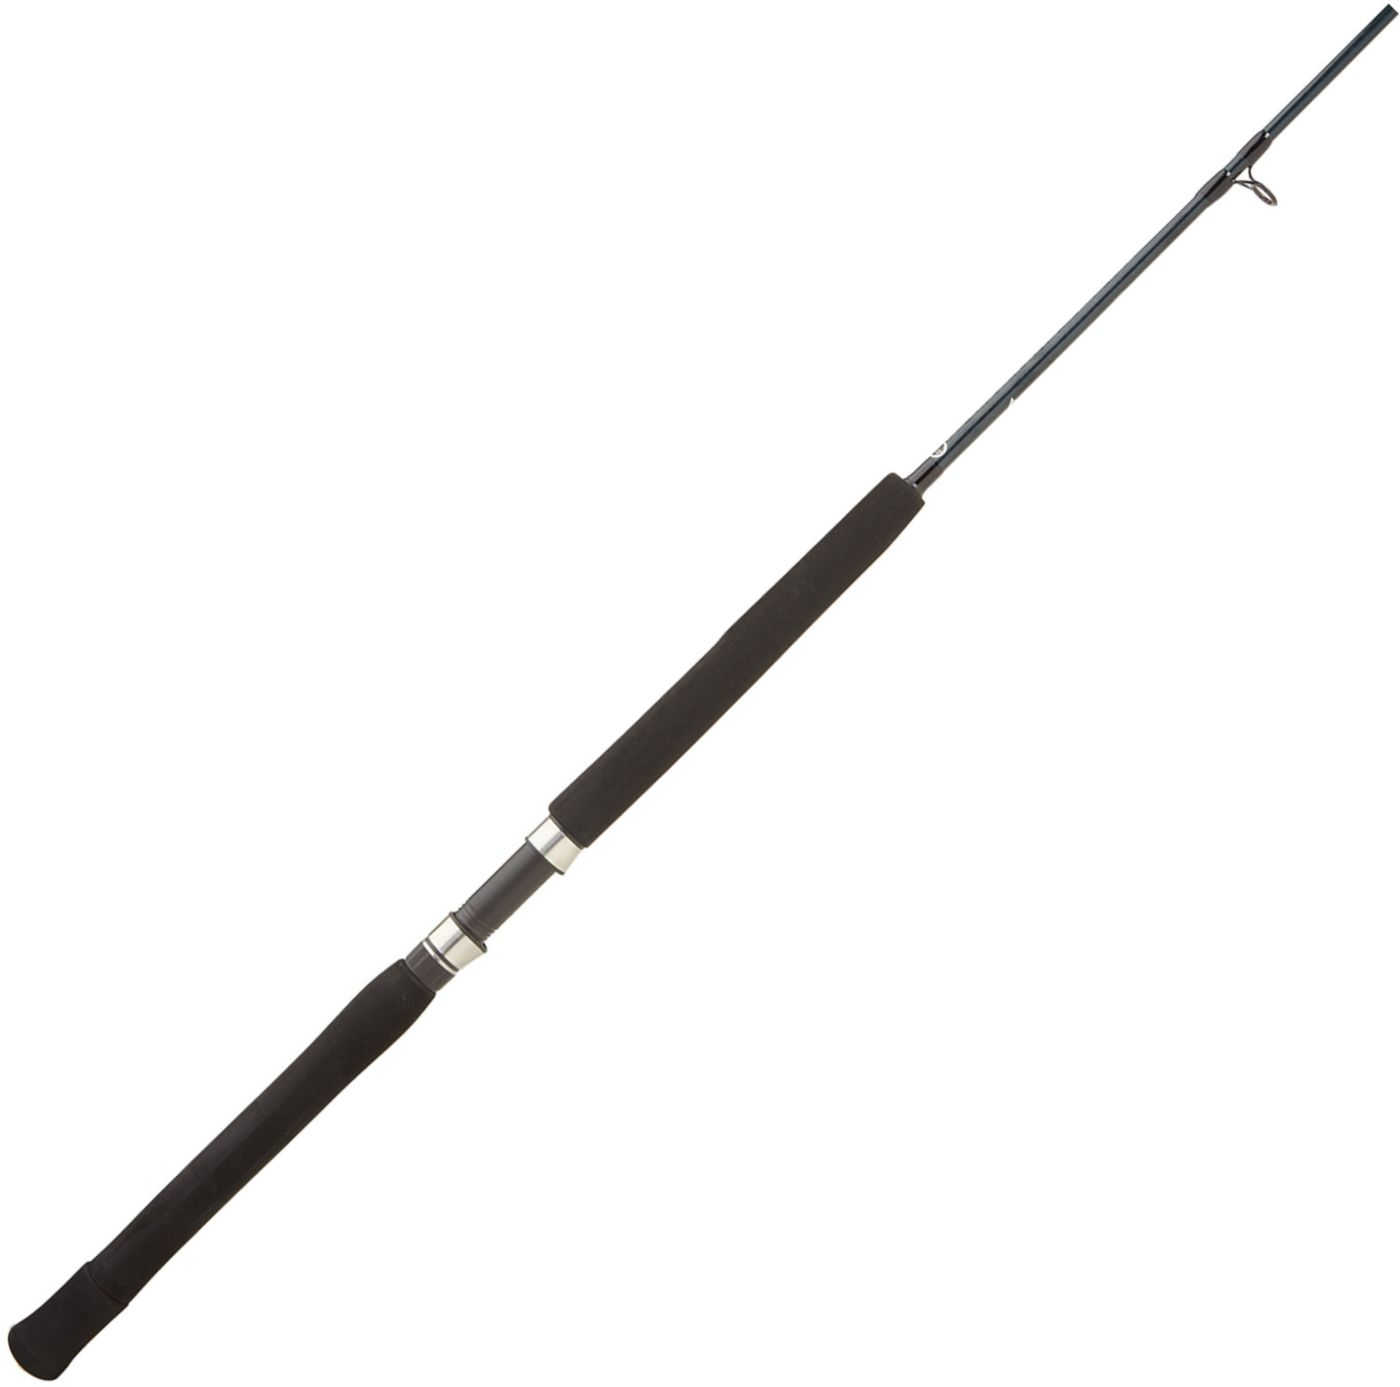 Shimano Tallus Blue Water Conventional Rod